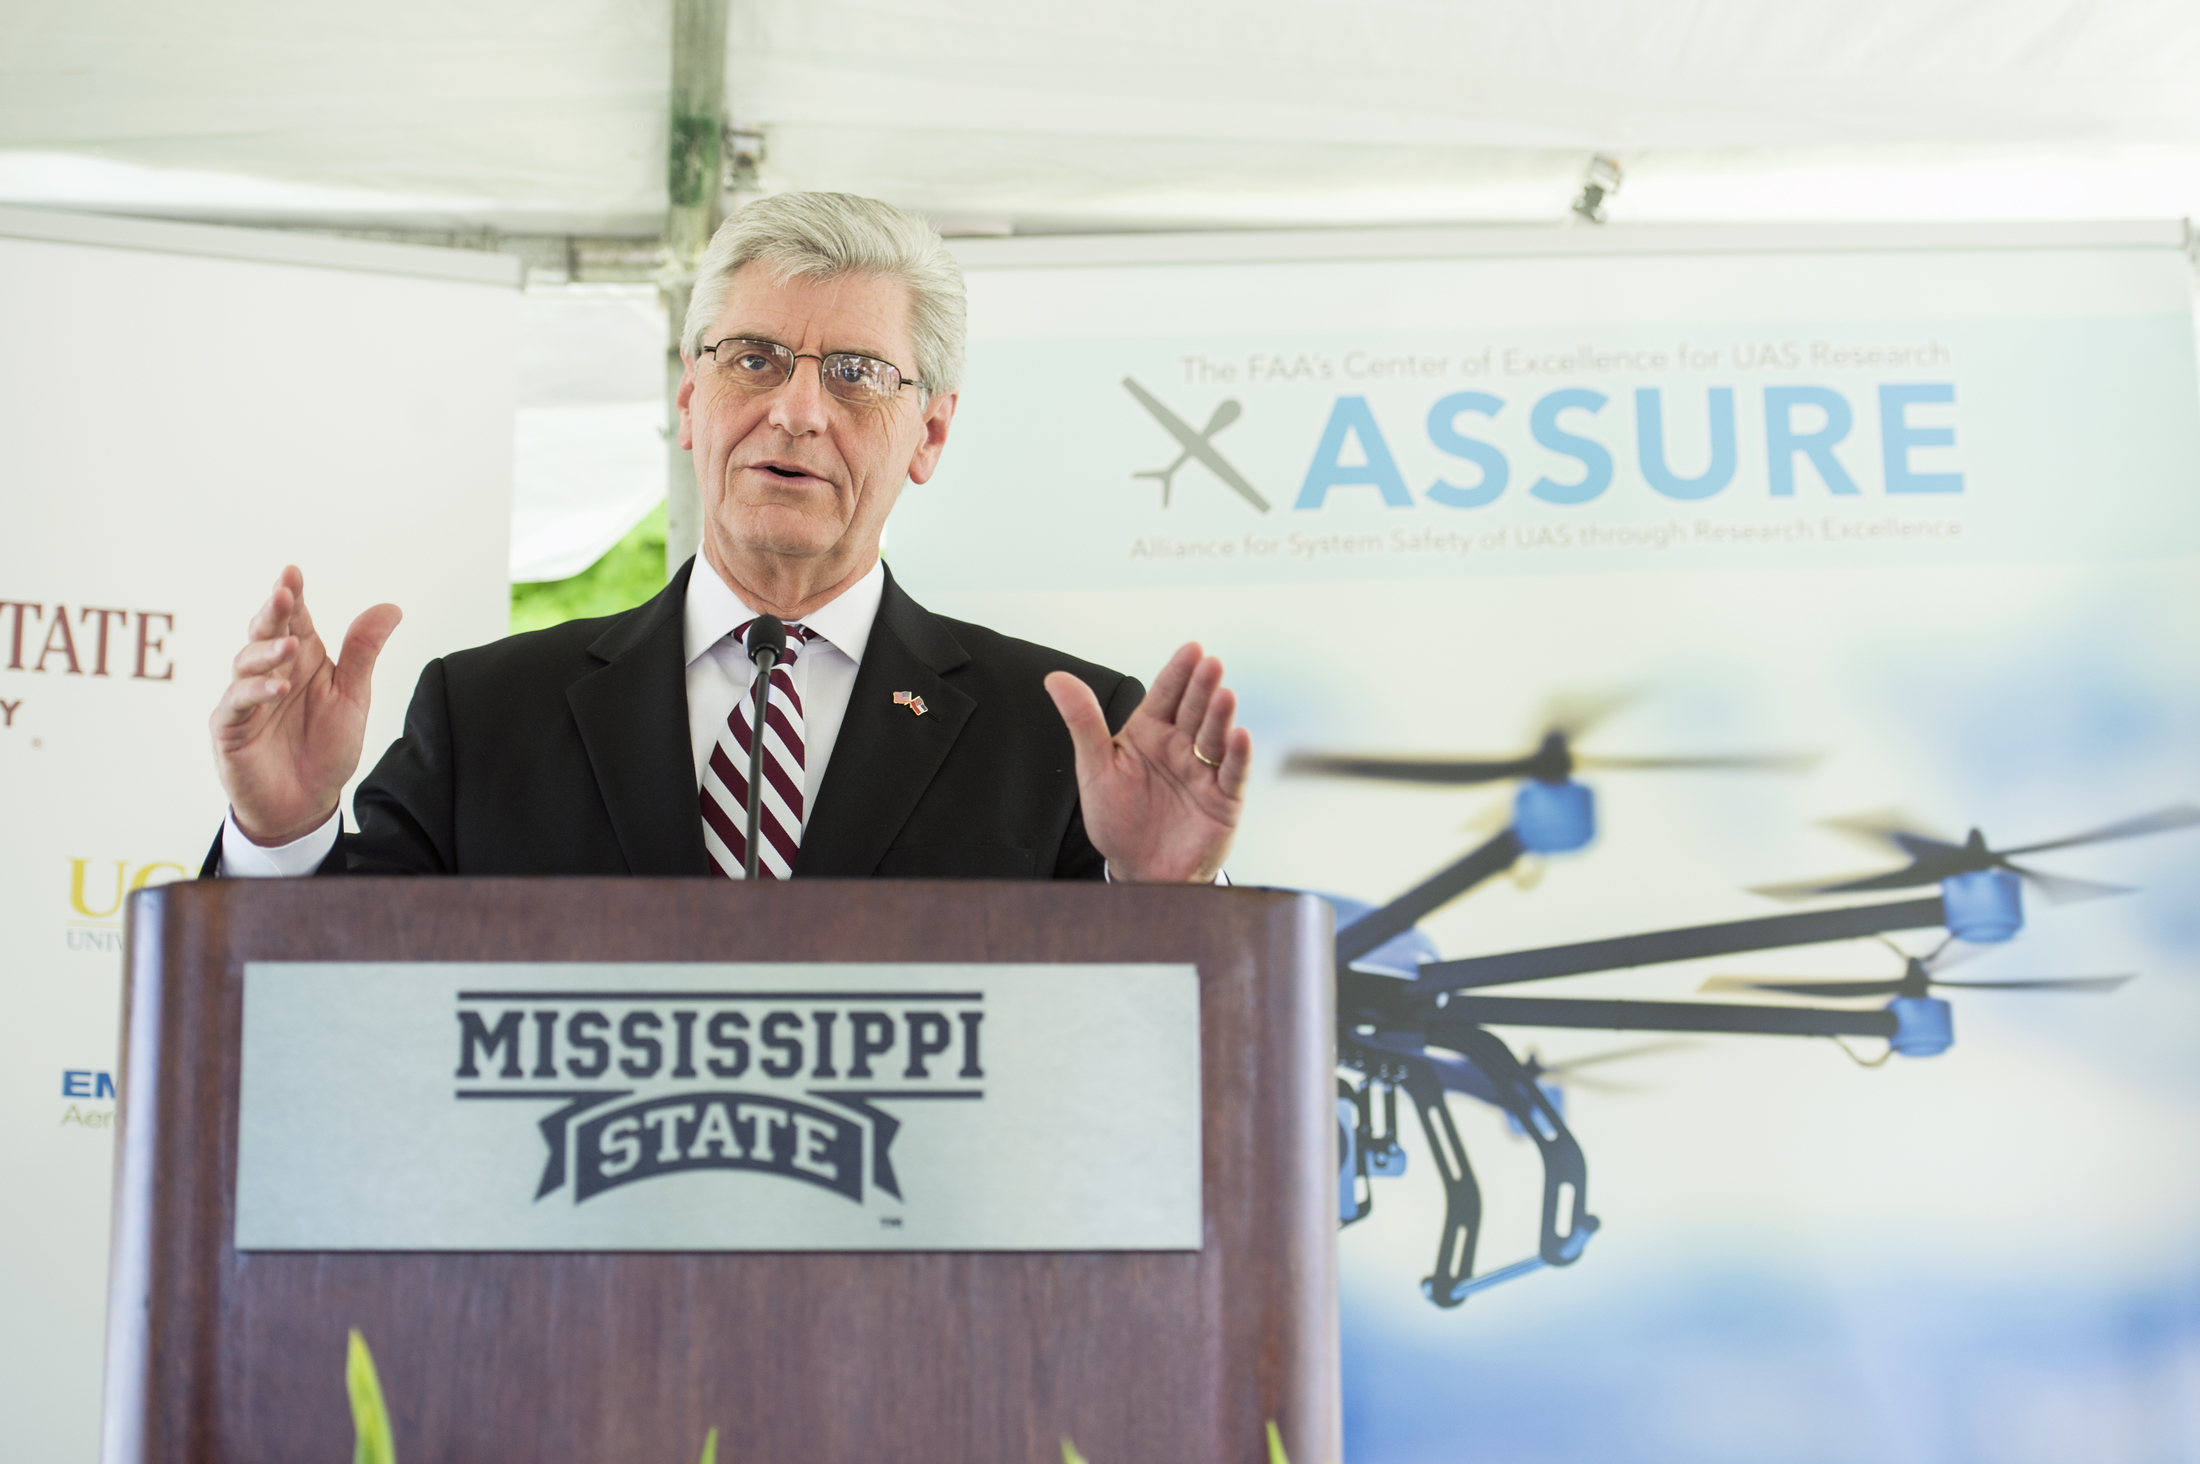 Gov. Phil Bryant speaks at Mississippi State University Friday [June 5] during a campus press conference about the Federal Aviation Administration designating the university as the National Center of Excellence for Unmanned Aircraft Systems. Bryant lauded MSU's leadership and the positive impact that ongoing research and development will have on the state's economy. Bryant said research at MSU has led the world in aerospace, automobile manufacturing and agribusiness.